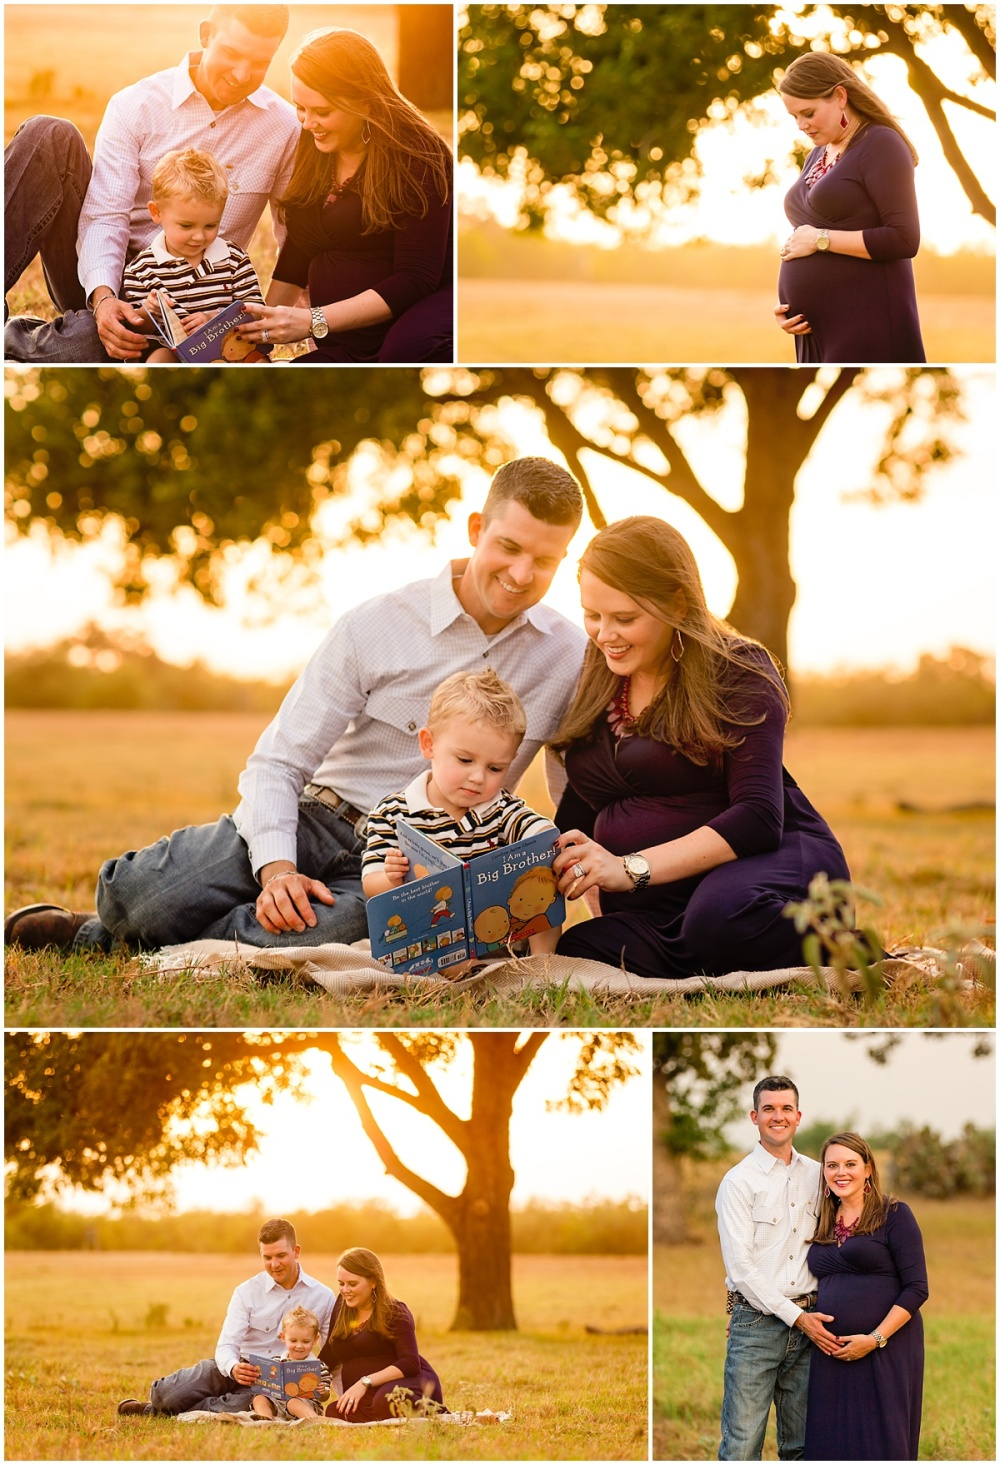 Family-Children-Portraits-Maternity-Photos-San-Antonio-Hill-Country-Texas-Carly-Barton-Photography_0011.jpg